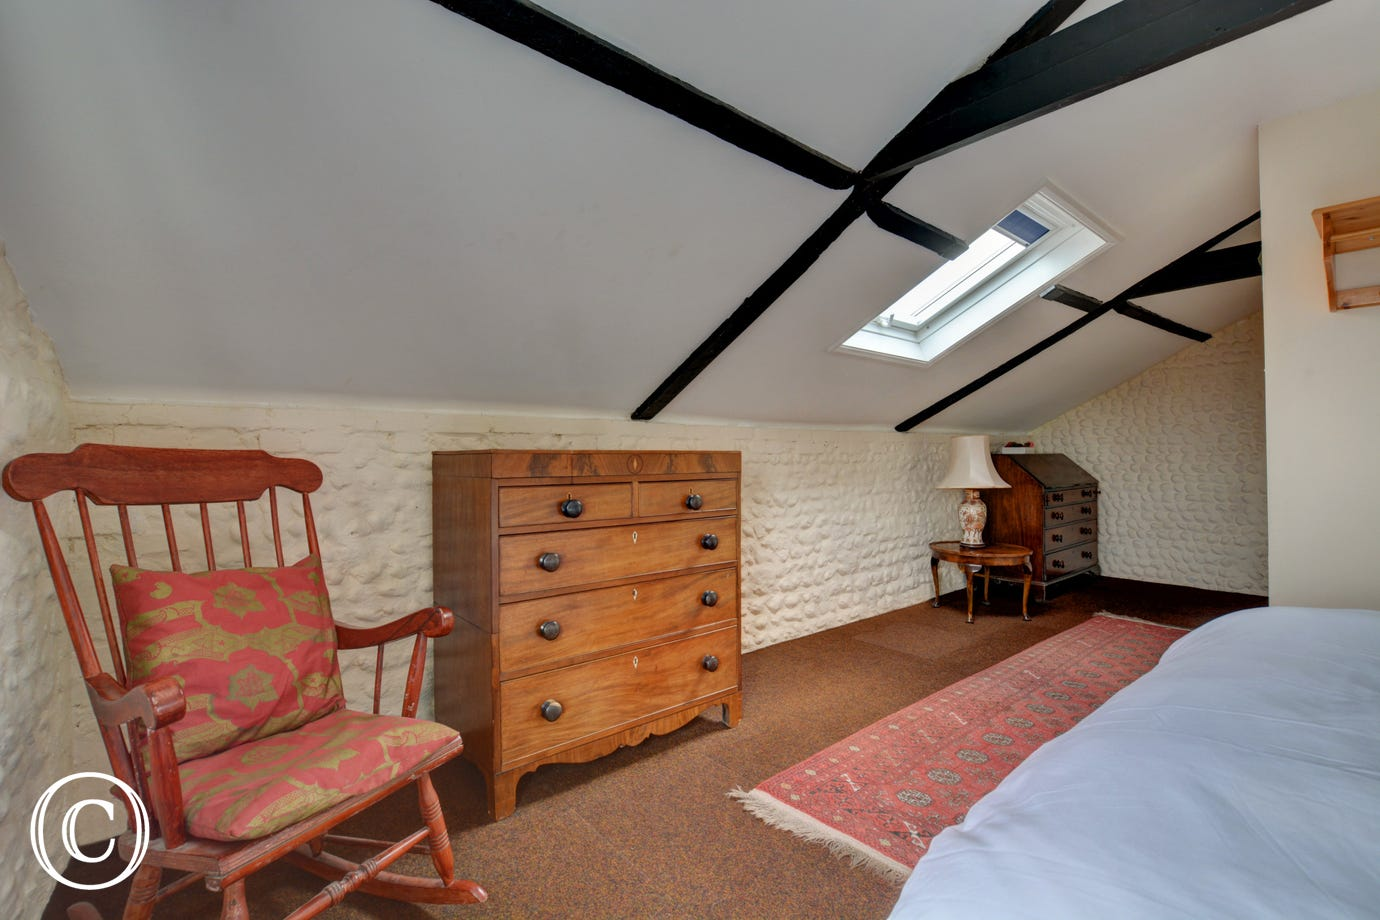 Bedroom one has a king sized bed and the added convenience of an en suite shower room.